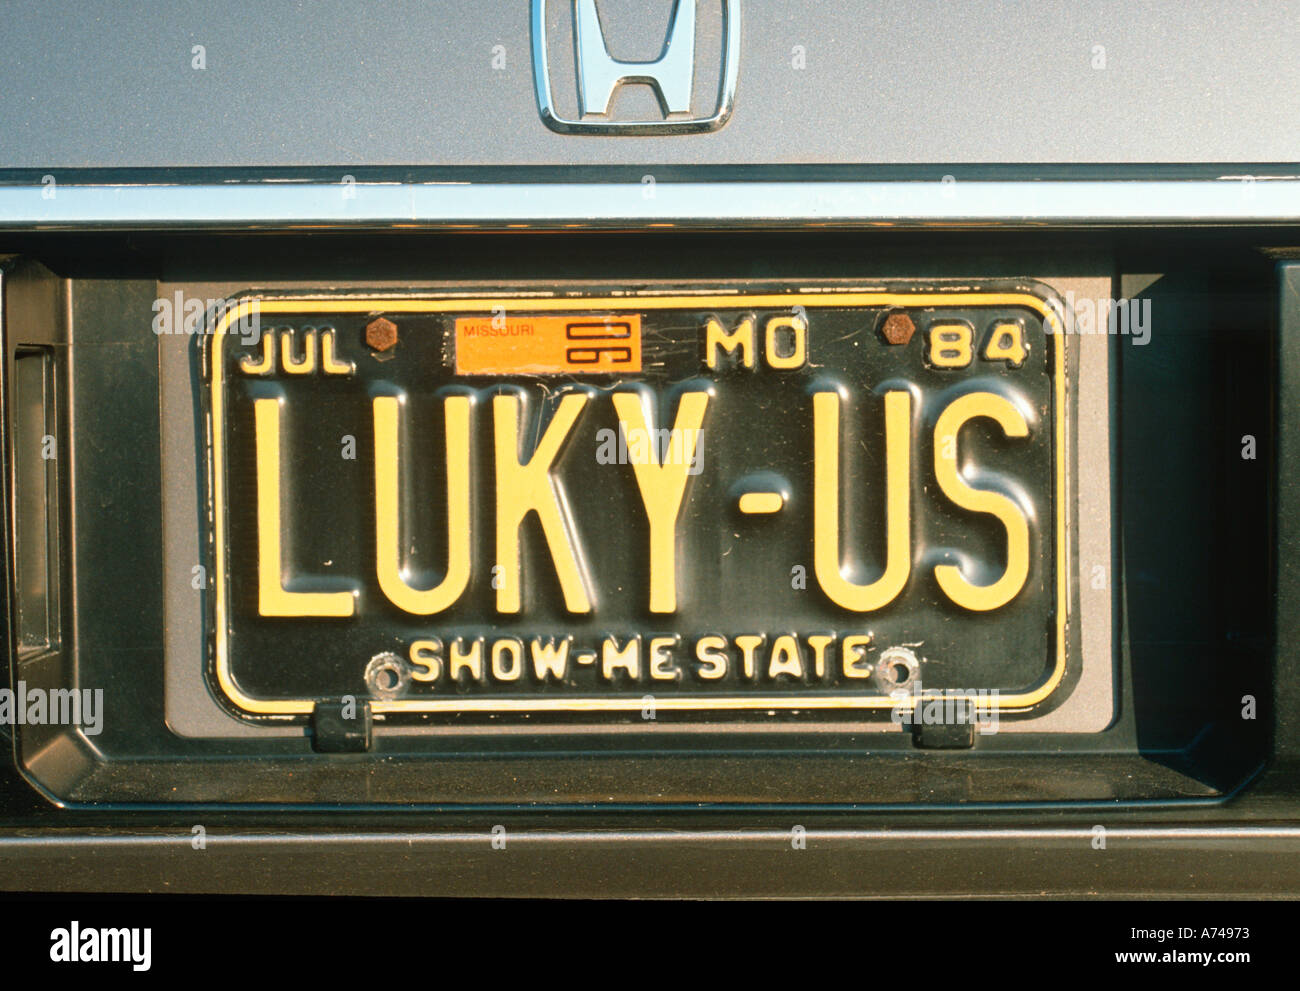 Awesome Www.plates.mo.gov Embellishment - Classic Cars Ideas - boiq.info